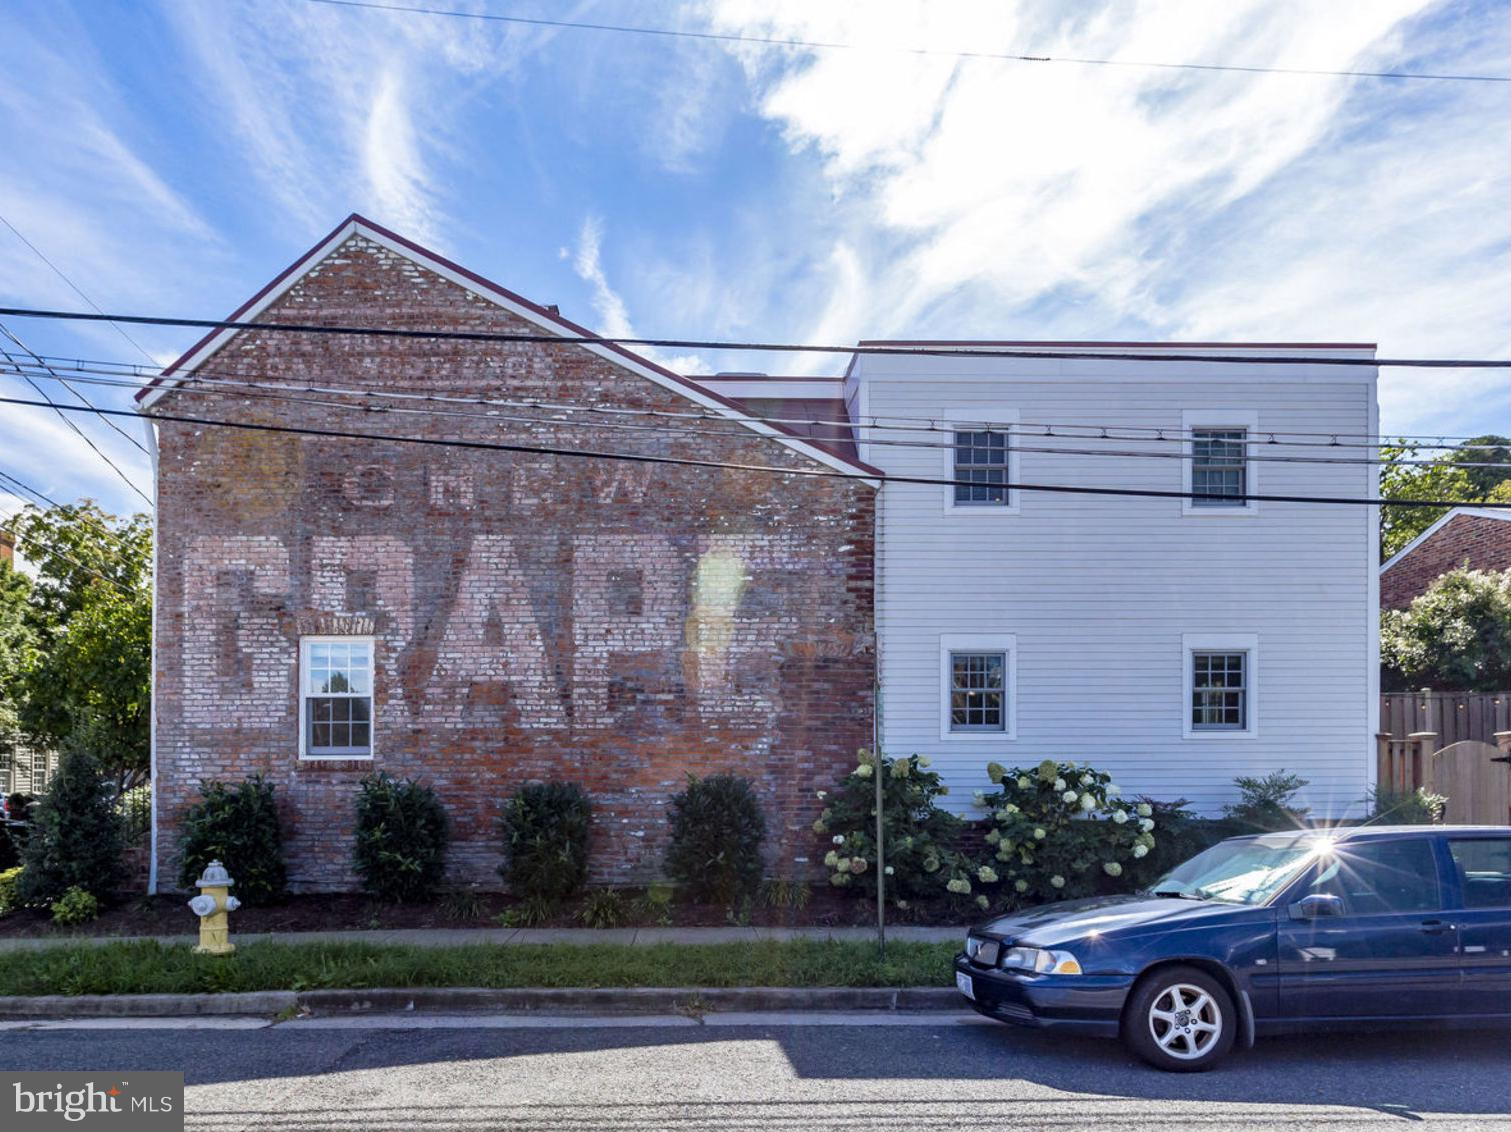 One of a kind 'Grape' House in Old Town! Circa 1840's historic home fully renovated in 2015 including new HVAC, plumbing, electric, hardwood flrs, gourmet kit w/granite & SS appliances, gas FP/stove, luxurious master suite, built-in shelving, exposed brick, etc. English basement w/lots of storage. 2 BDRM/ 2.5 BA. Fully fenced patio w/gas fire pit. Furniture Conveys! Steps to everything!